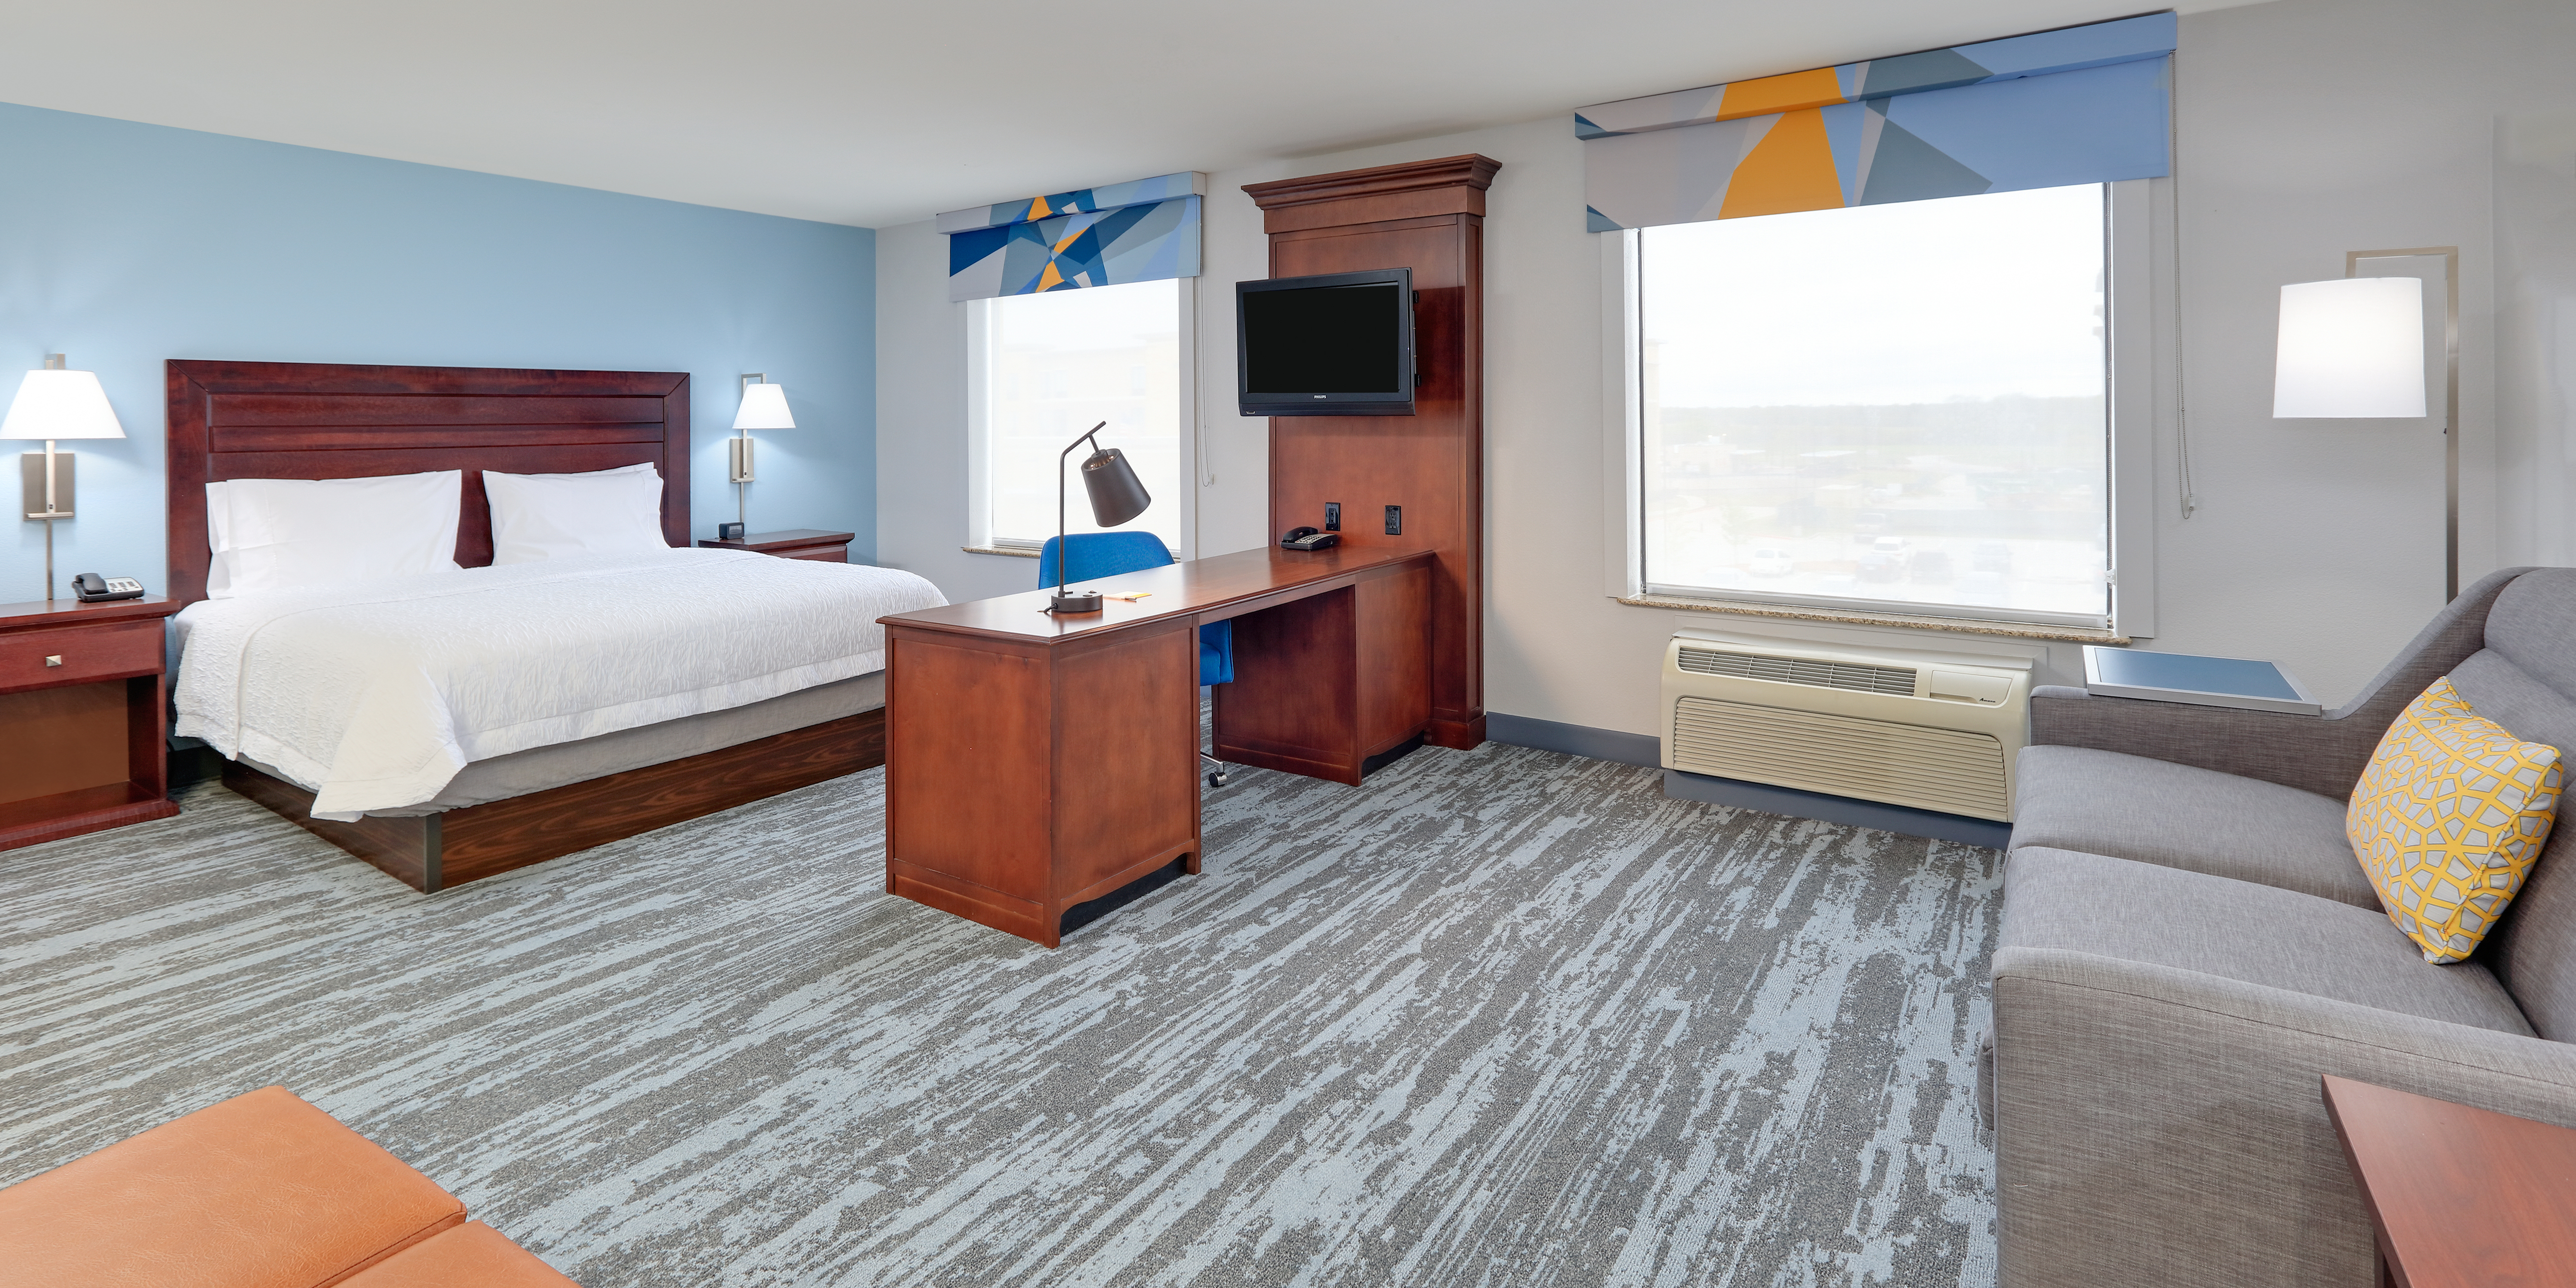 Hampton Inn & Suites Dallas-Arlington South Starts The New Year With Top-To-Bottom Renovation